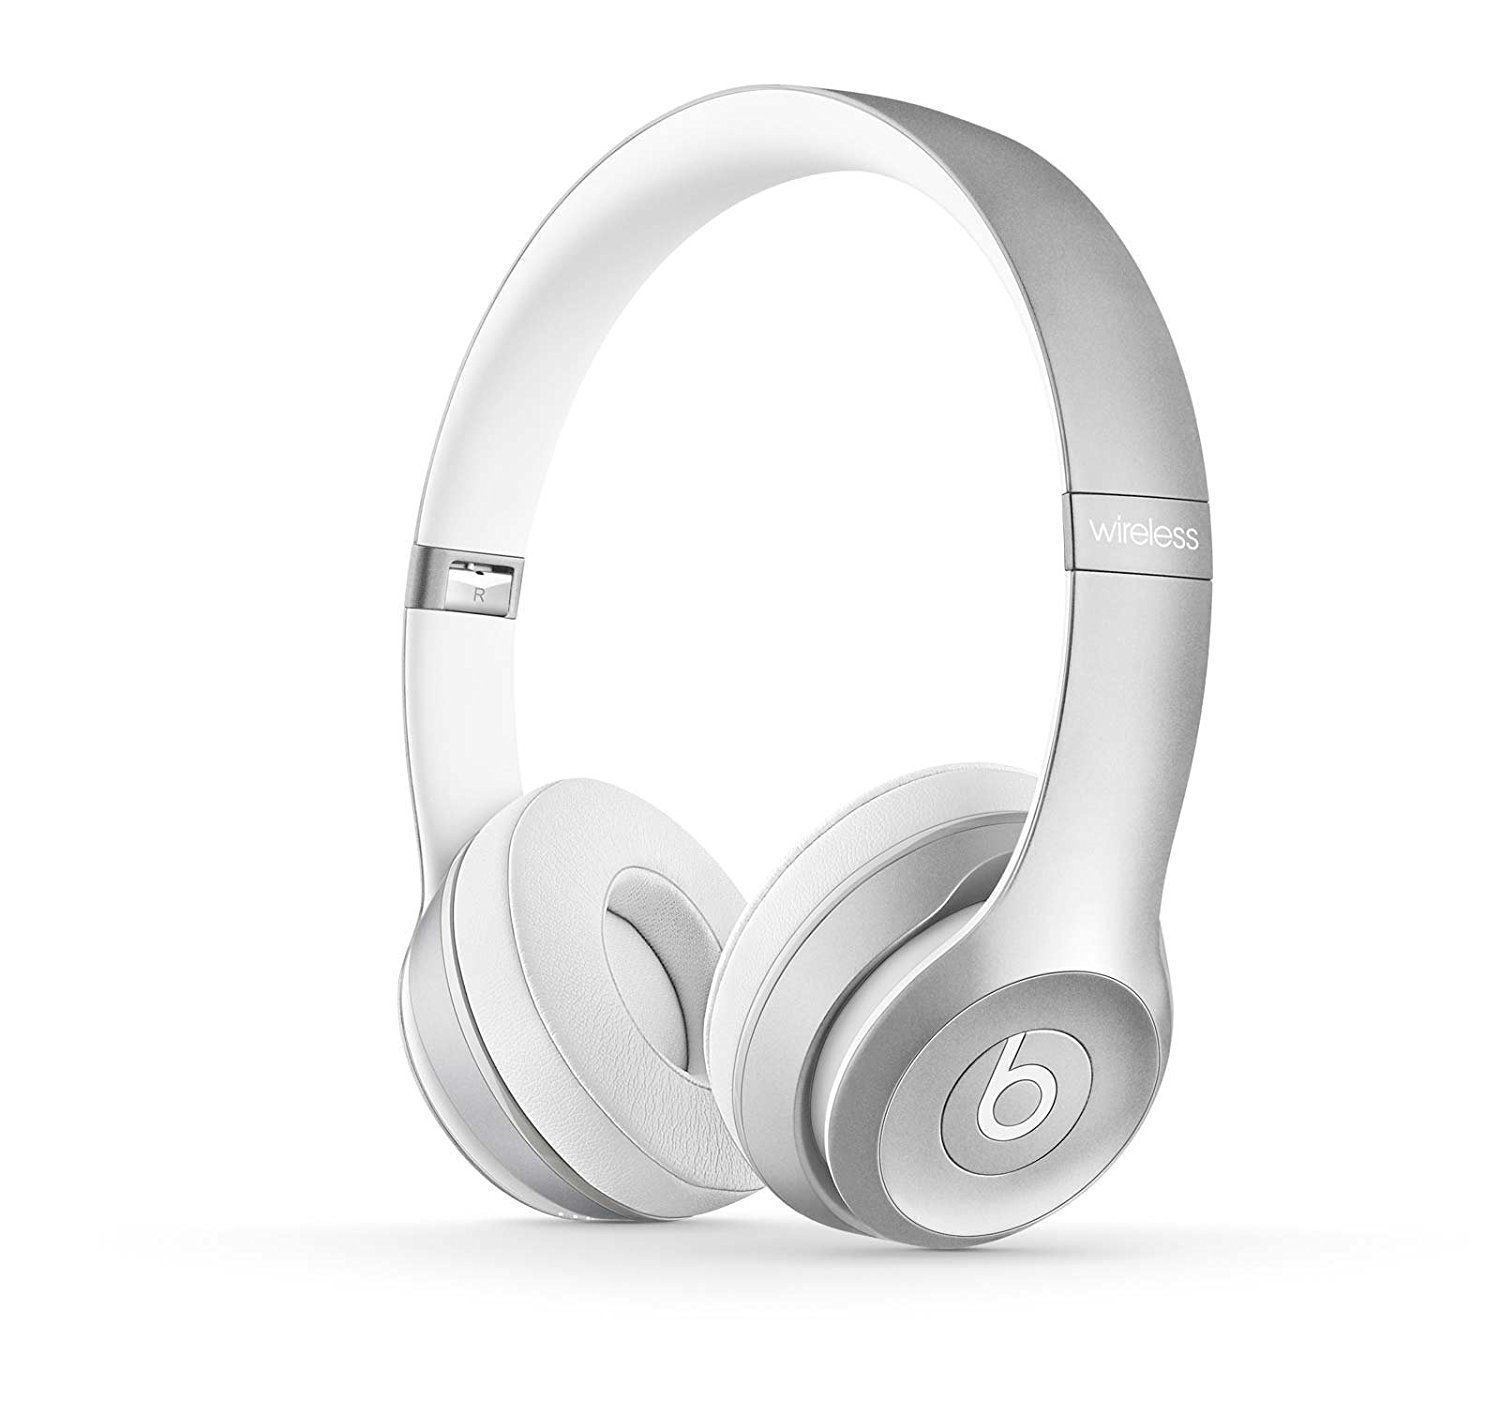 Beats By Dre - Beats by Dr. Dre Solo2 Wireless Headband Headphones - Silver Edition